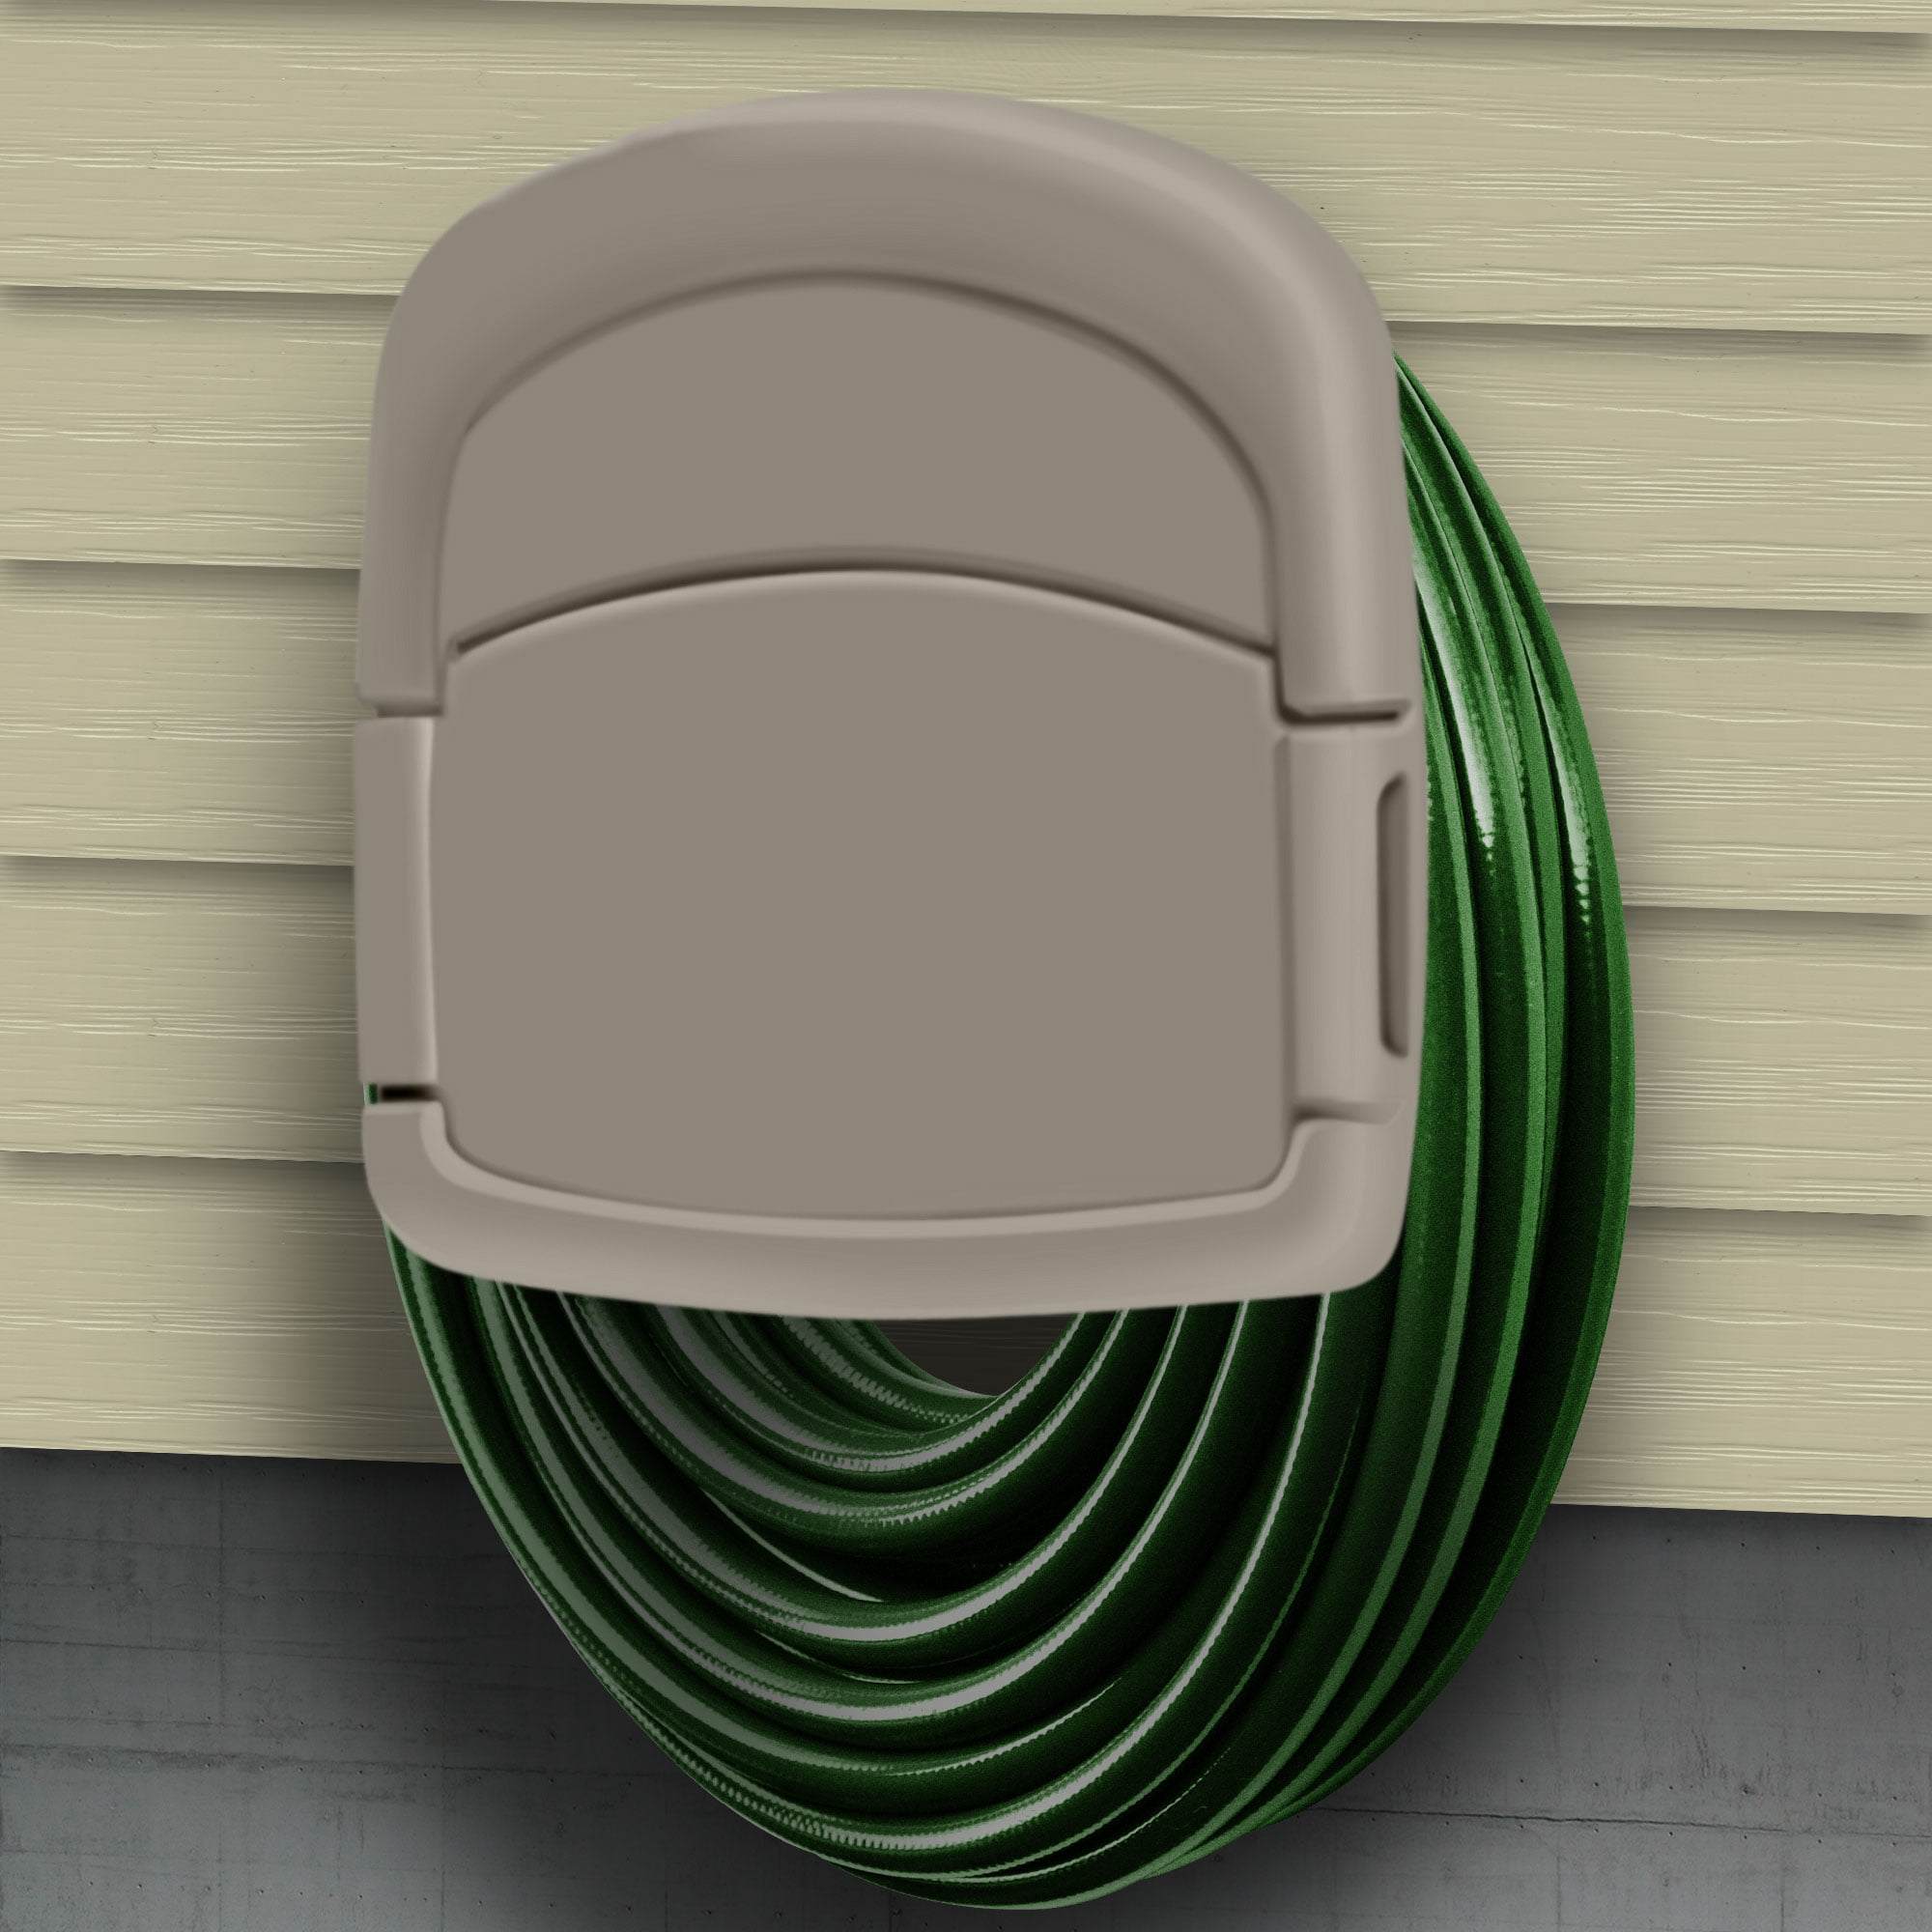 Wall Mounted Garden Hose Storage Caddy 150 Foot Capacity For Standard 5 8 Outdoor Hanging Organizer Cabinet By Sto Away